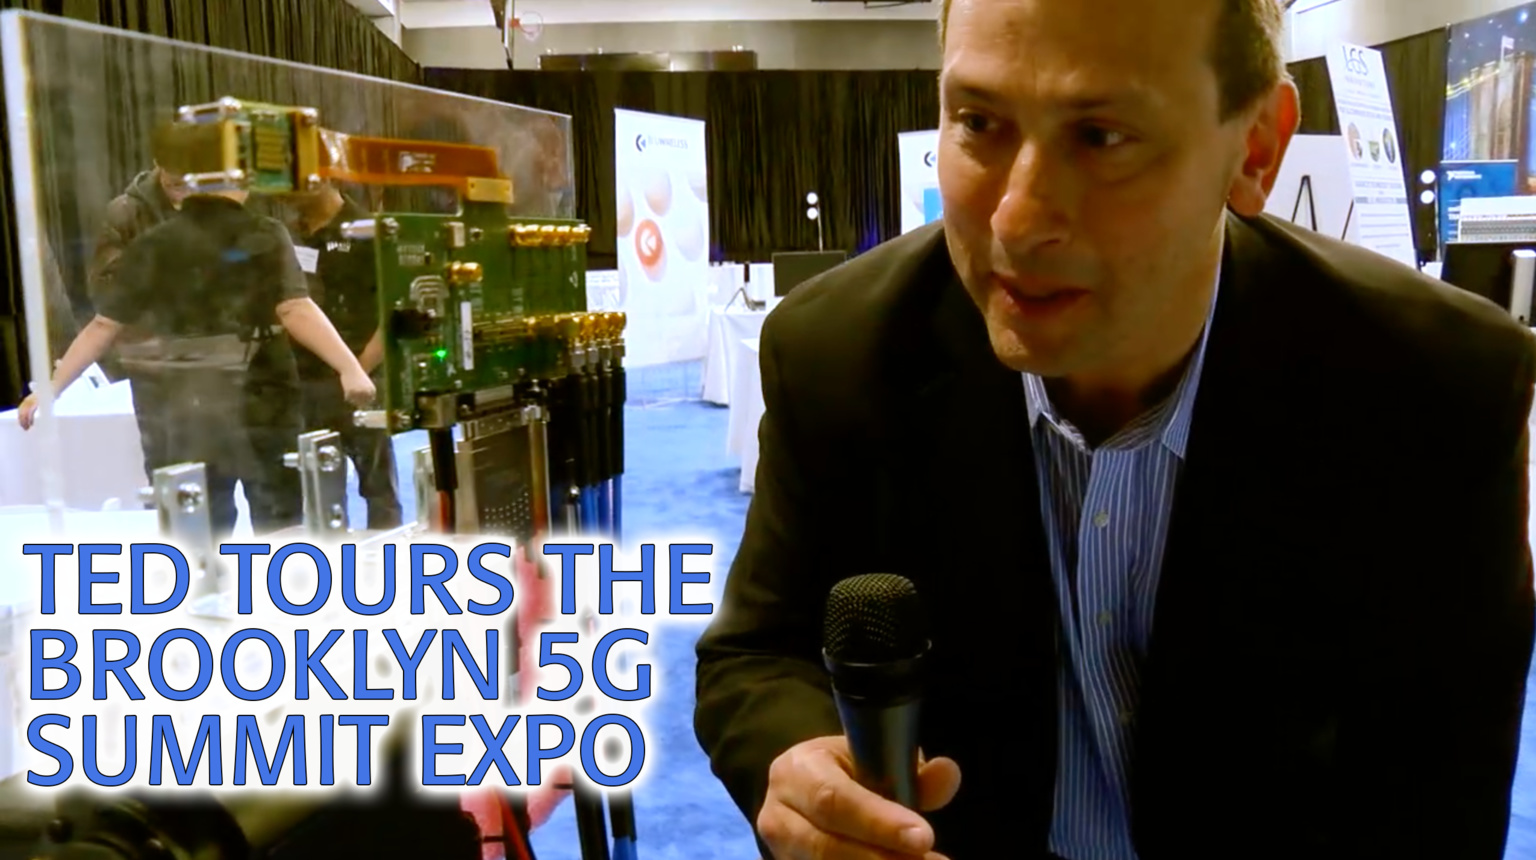 Ted Tours the 2018 Brooklyn 5G Summit Expo